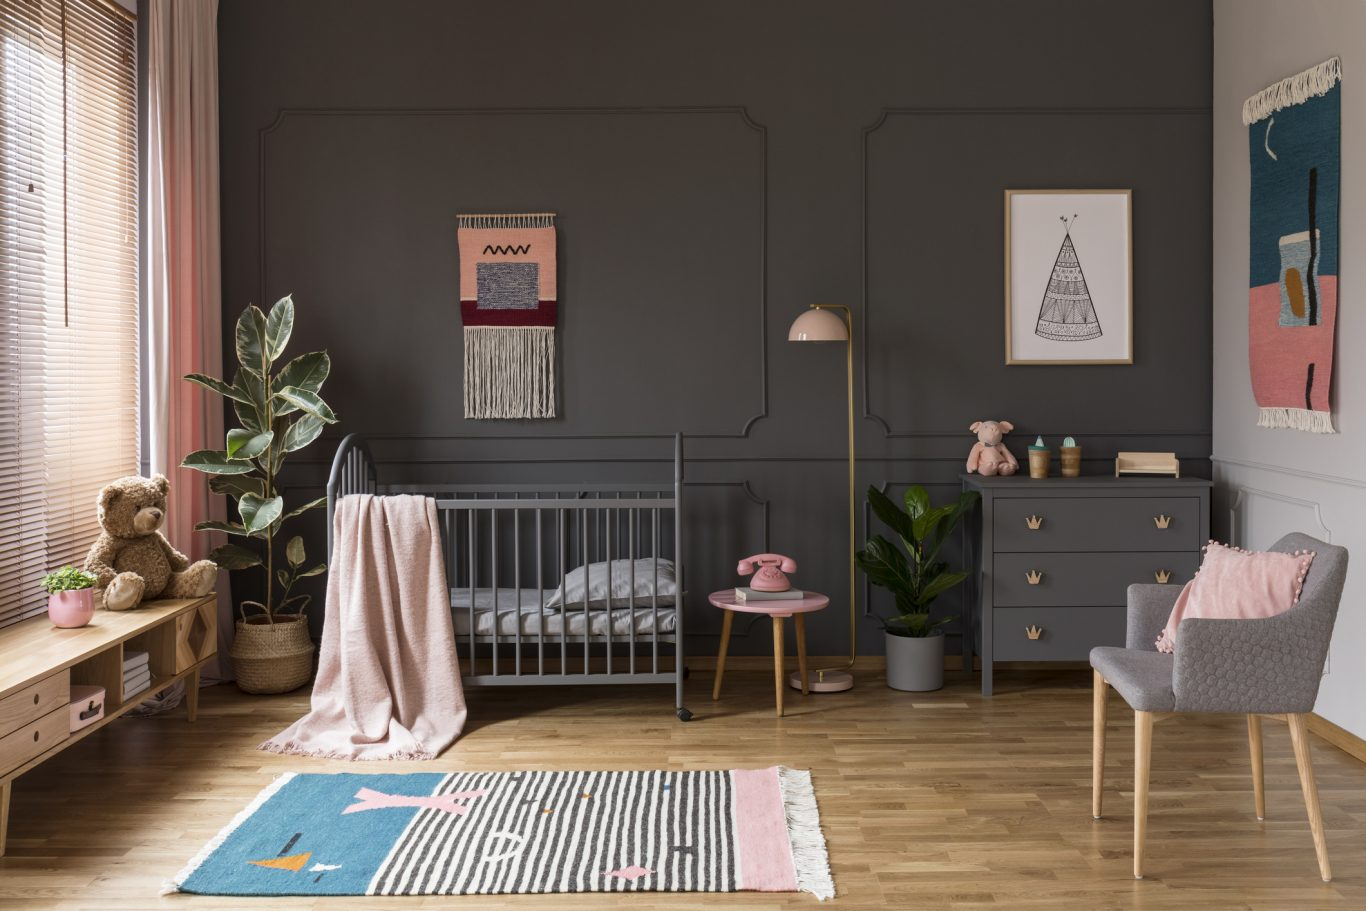 tendencias en decoracion infantil